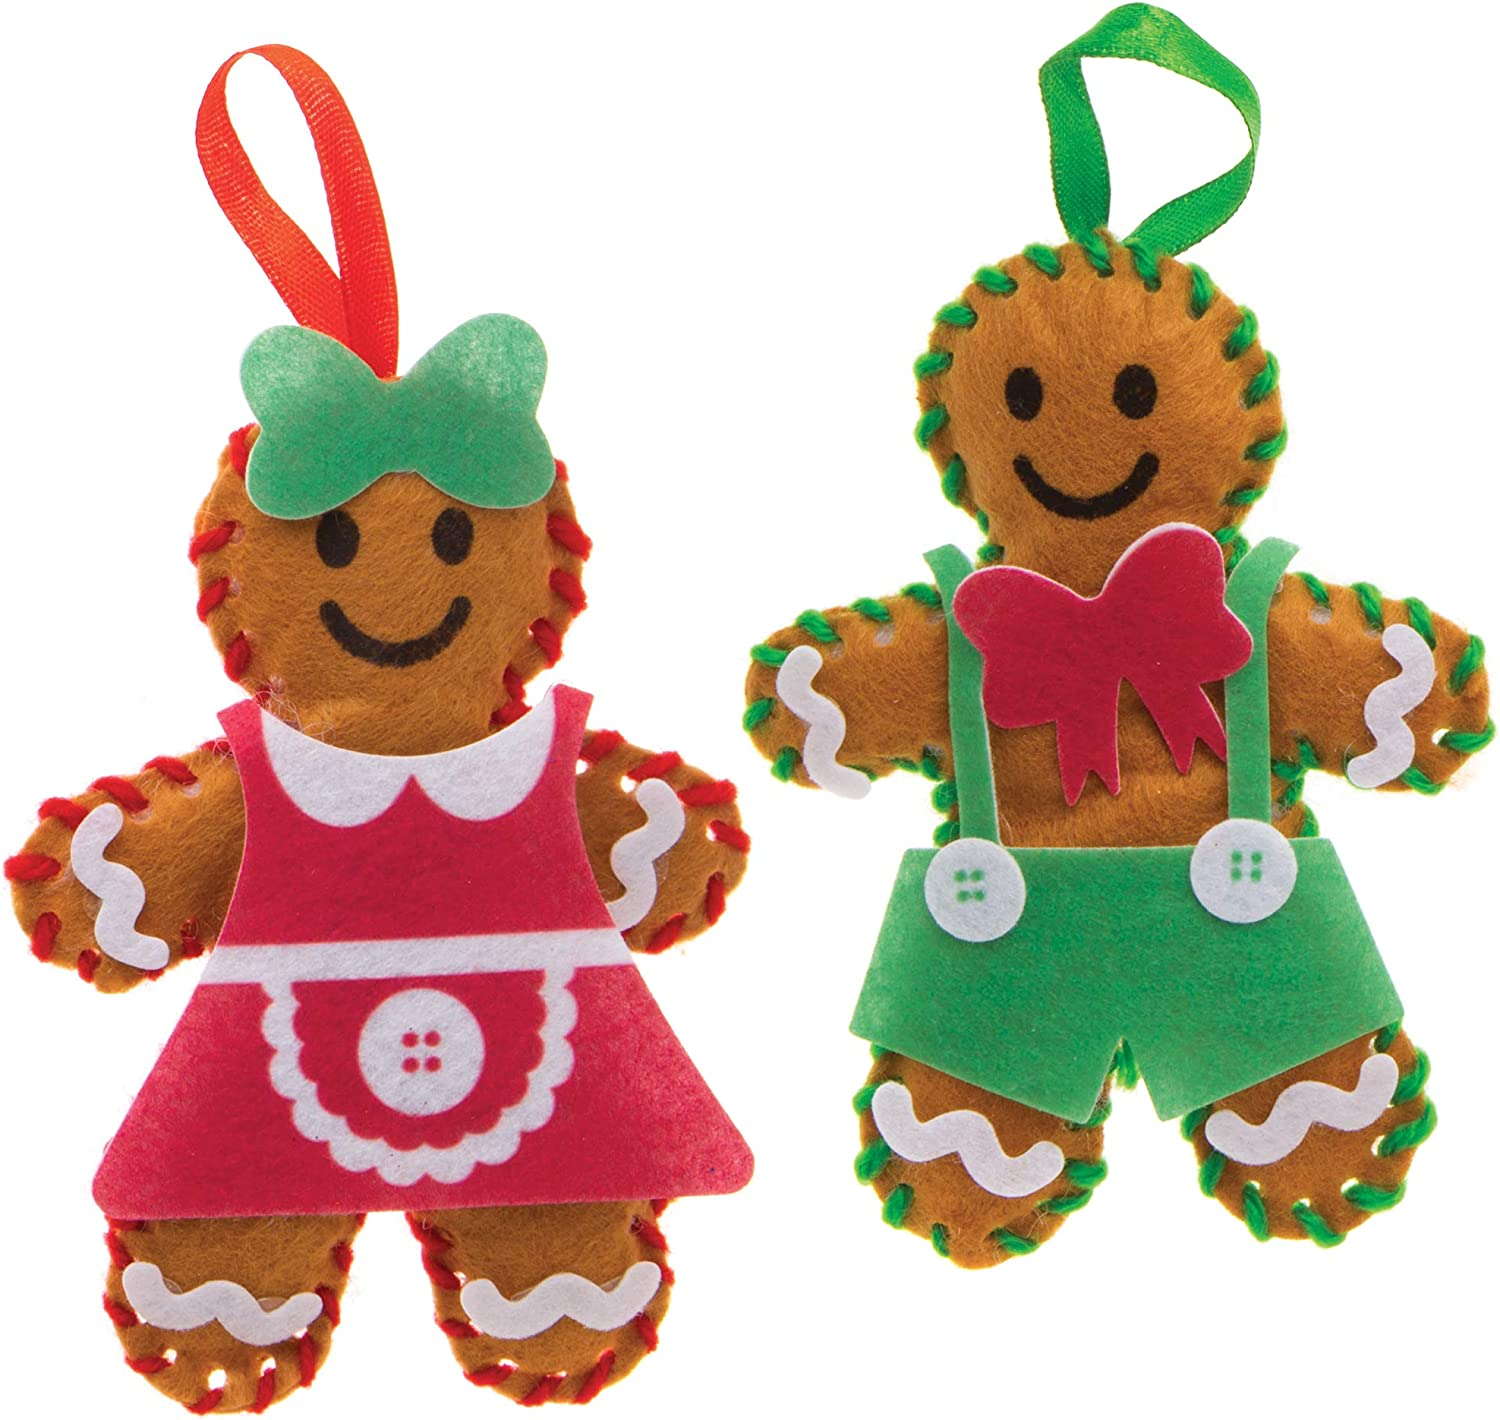 Christmas Arts and Crafts Pack of 3 Baker Ross Gingerbread Decoration Sewing Kits